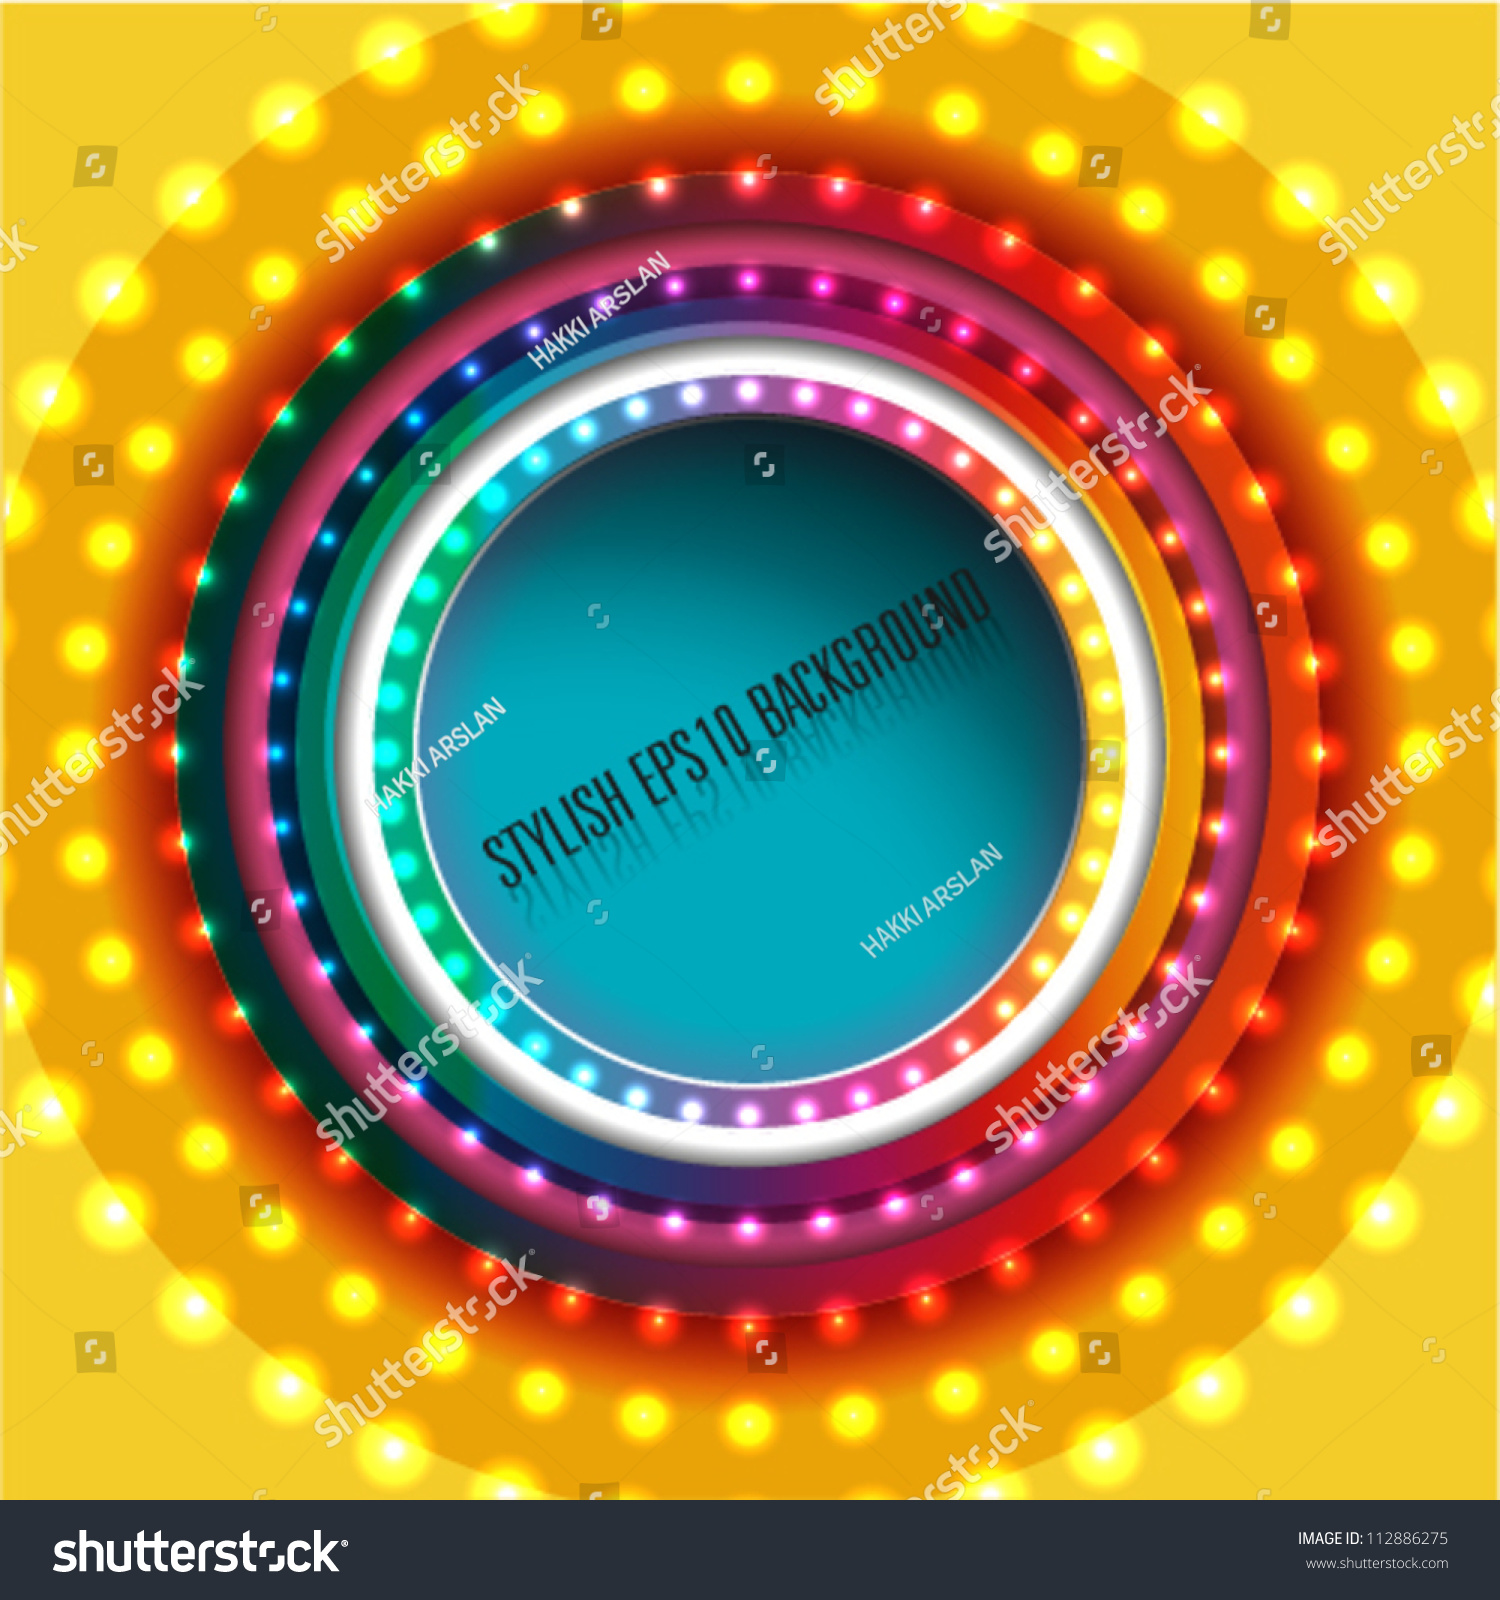 background backgrounds abstract advertisements - photo #28